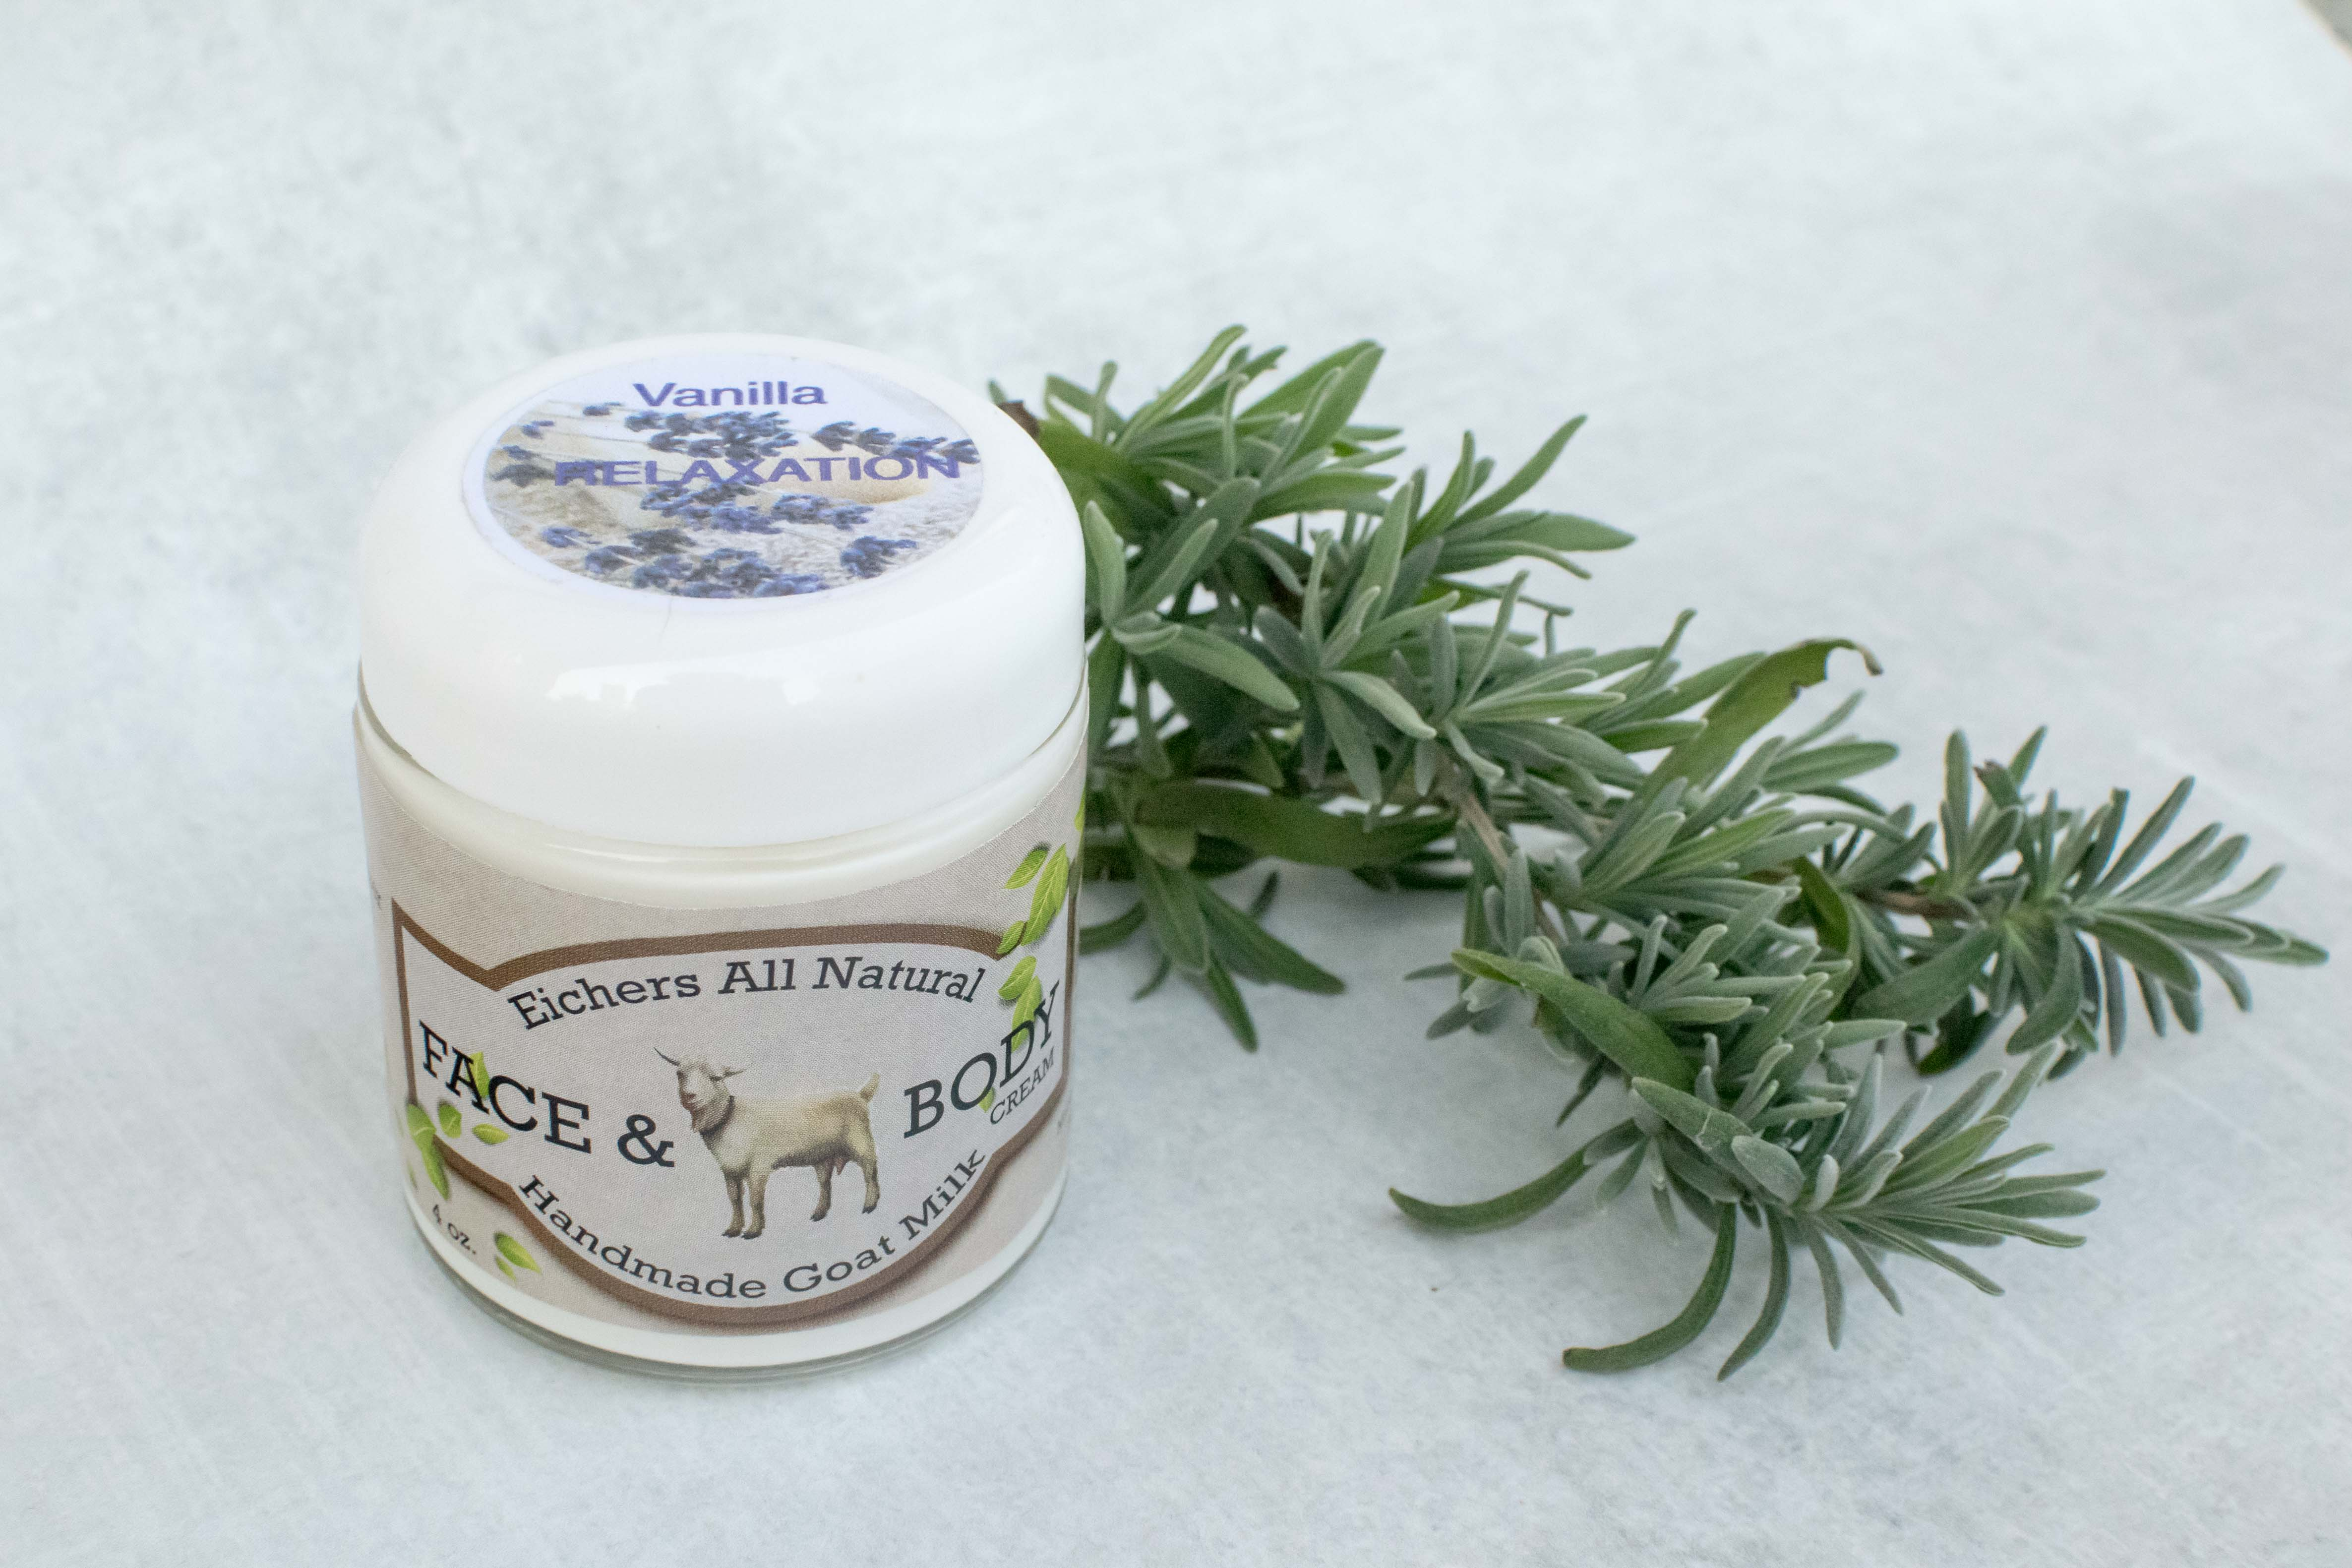 Vanilla Handcrafted Goat Milk Face and Body Cream - eichershobbyfarm - Goat Milk Products - Avon, Minnesota